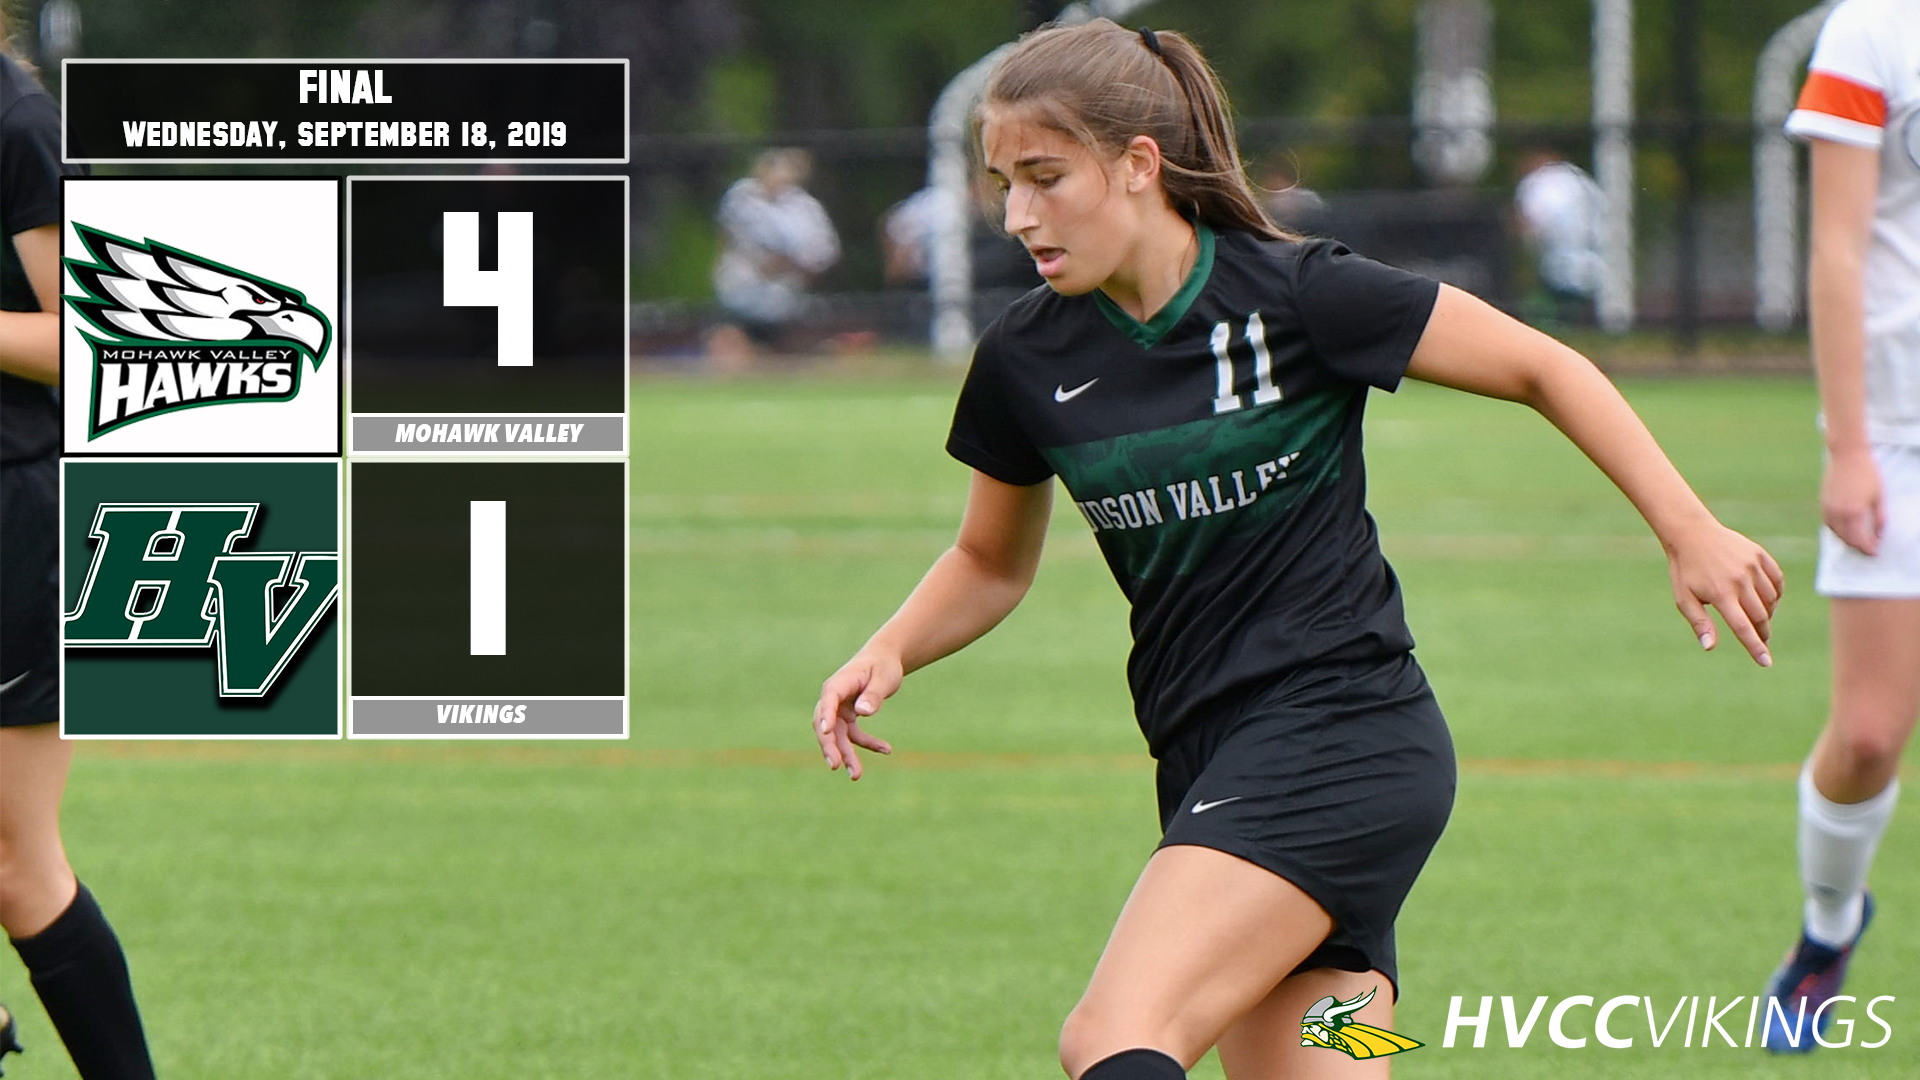 Women's soccer defeated 4-1 at Mohawk Valley on 9/18/2019